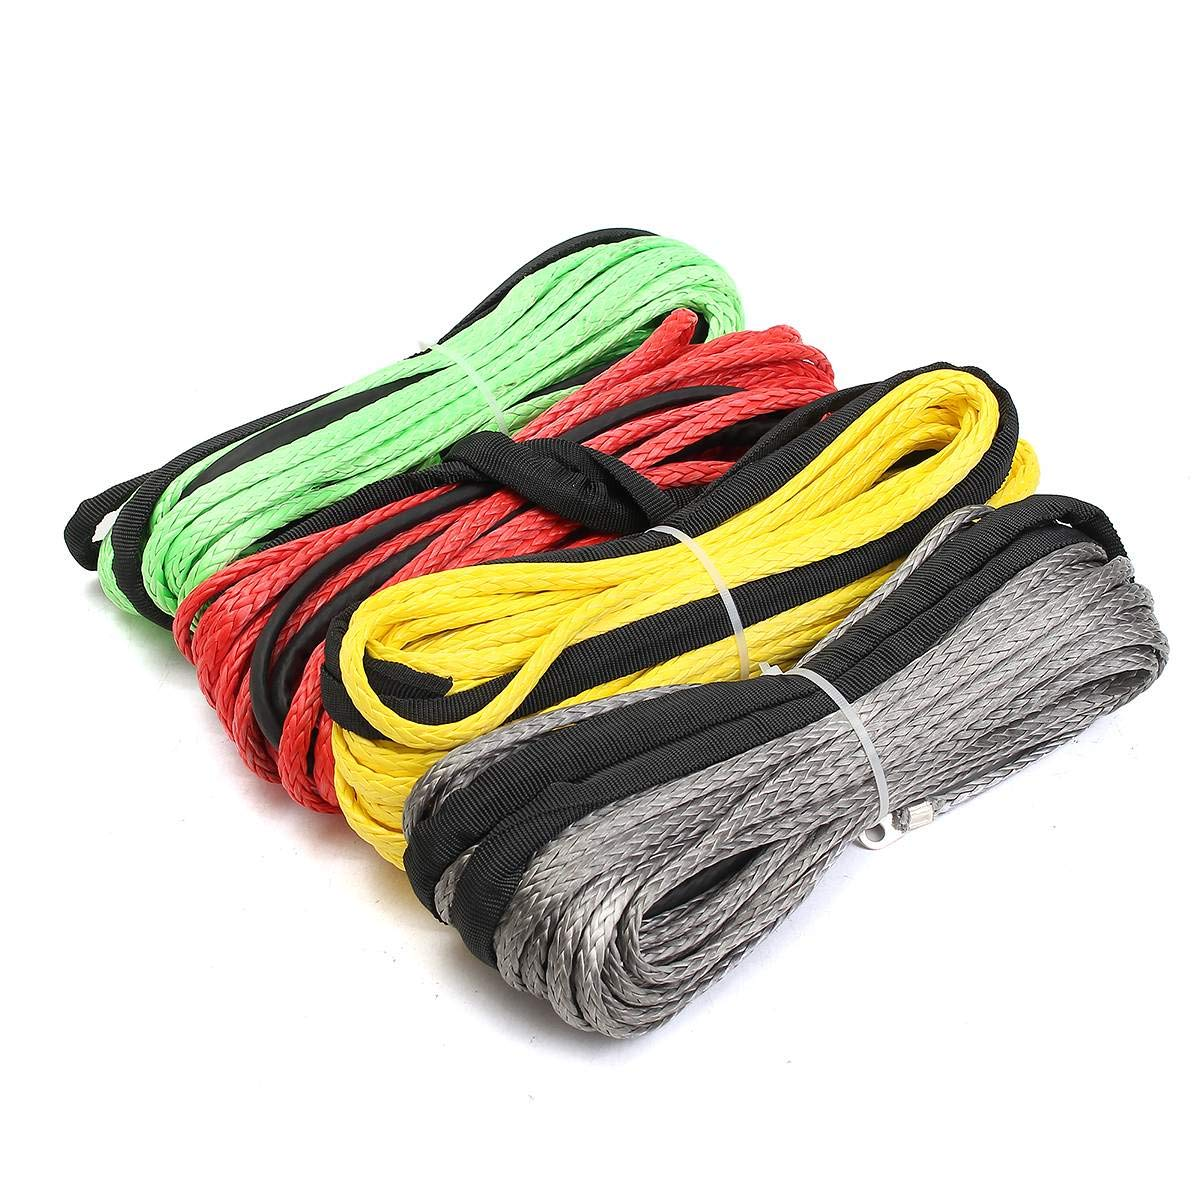 OscenLife Best Price 3//16 x 50 Synthetic Fiber Winch Line Cable Rope 5500 Sheath for ATV UTV 5.5mm15m Synthetic LBs